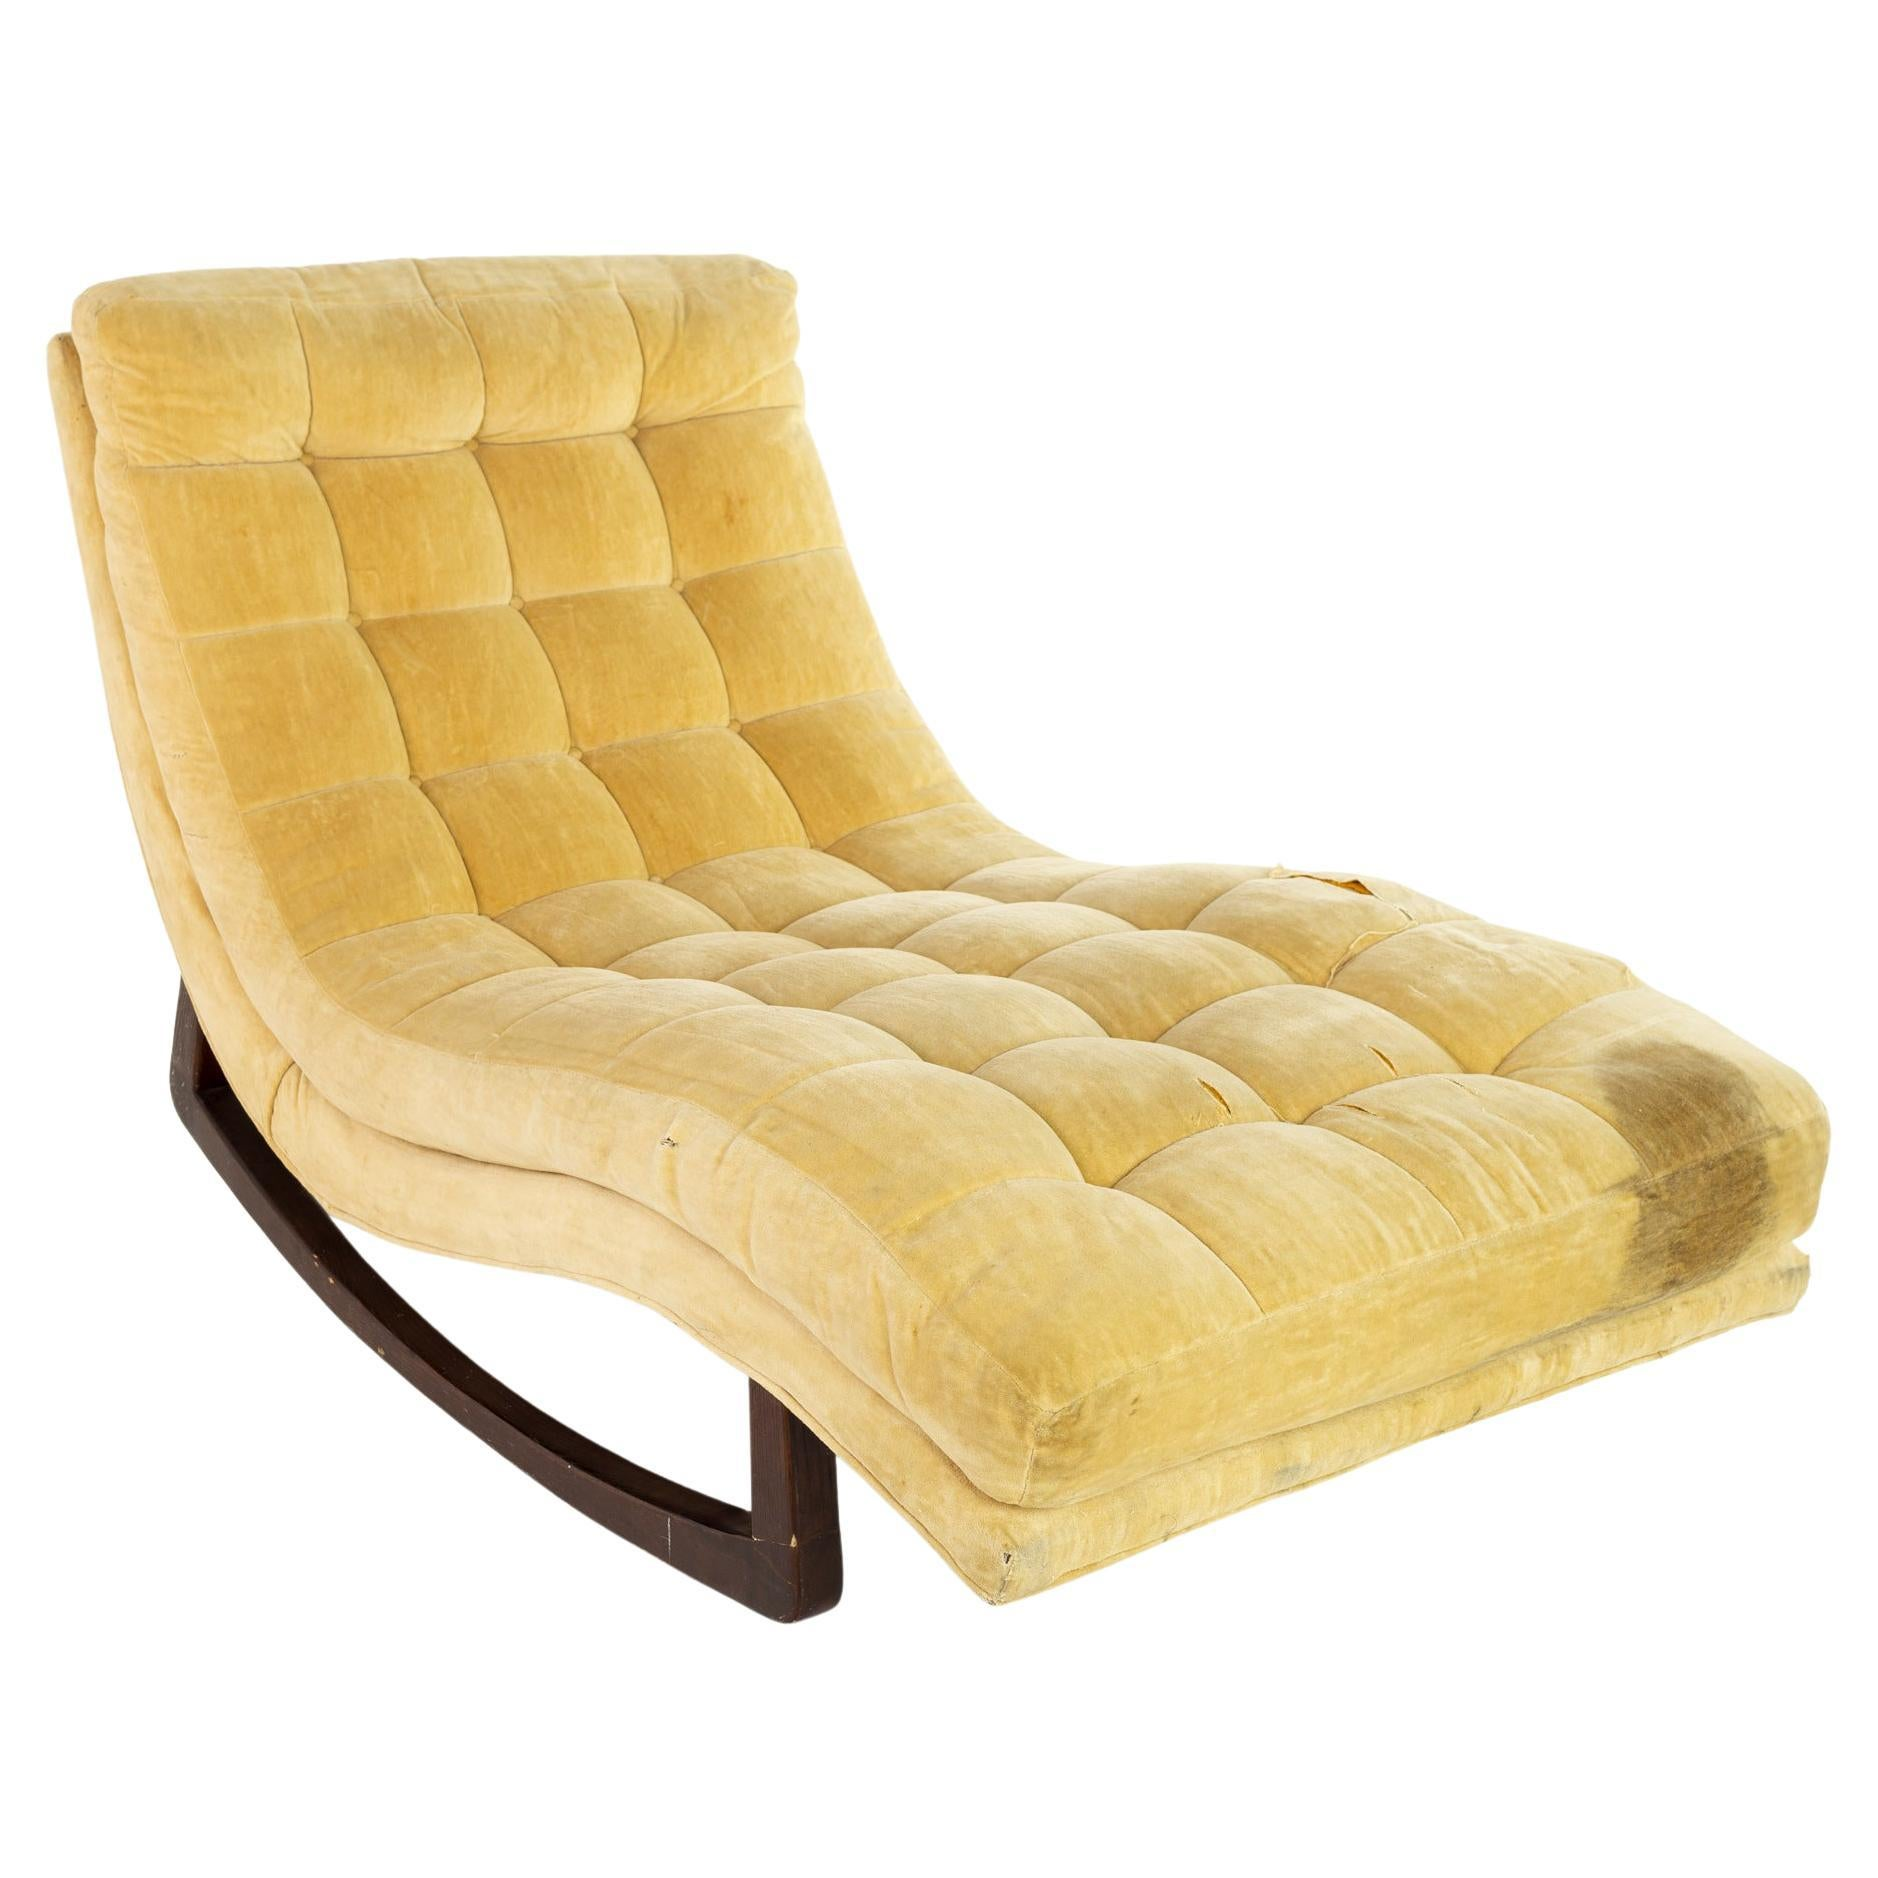 Adrian Pearsall for Craft Associates Mid Century Rocking Chaise Lounge Chair